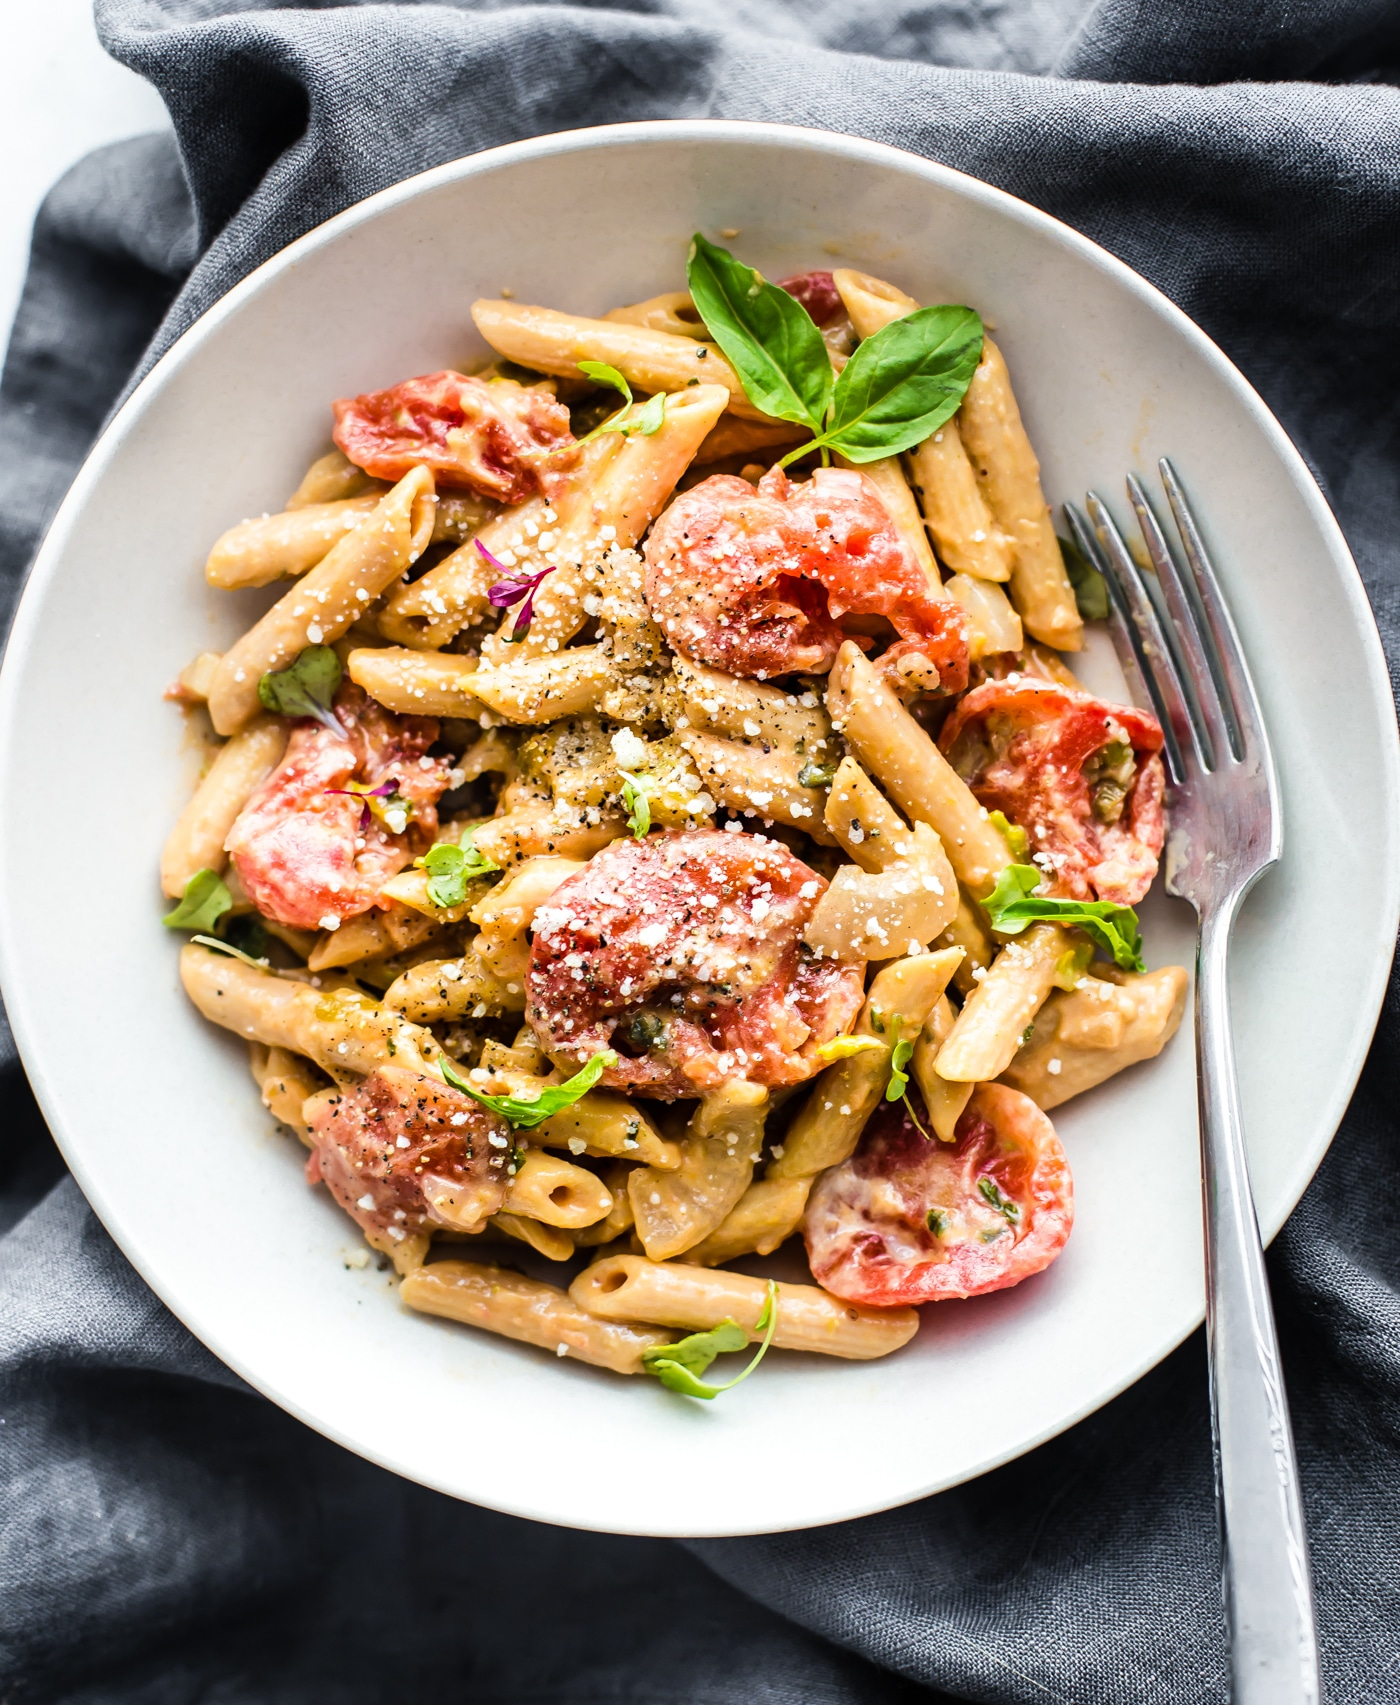 simple meatless pasta dinner made with gluten free pasta